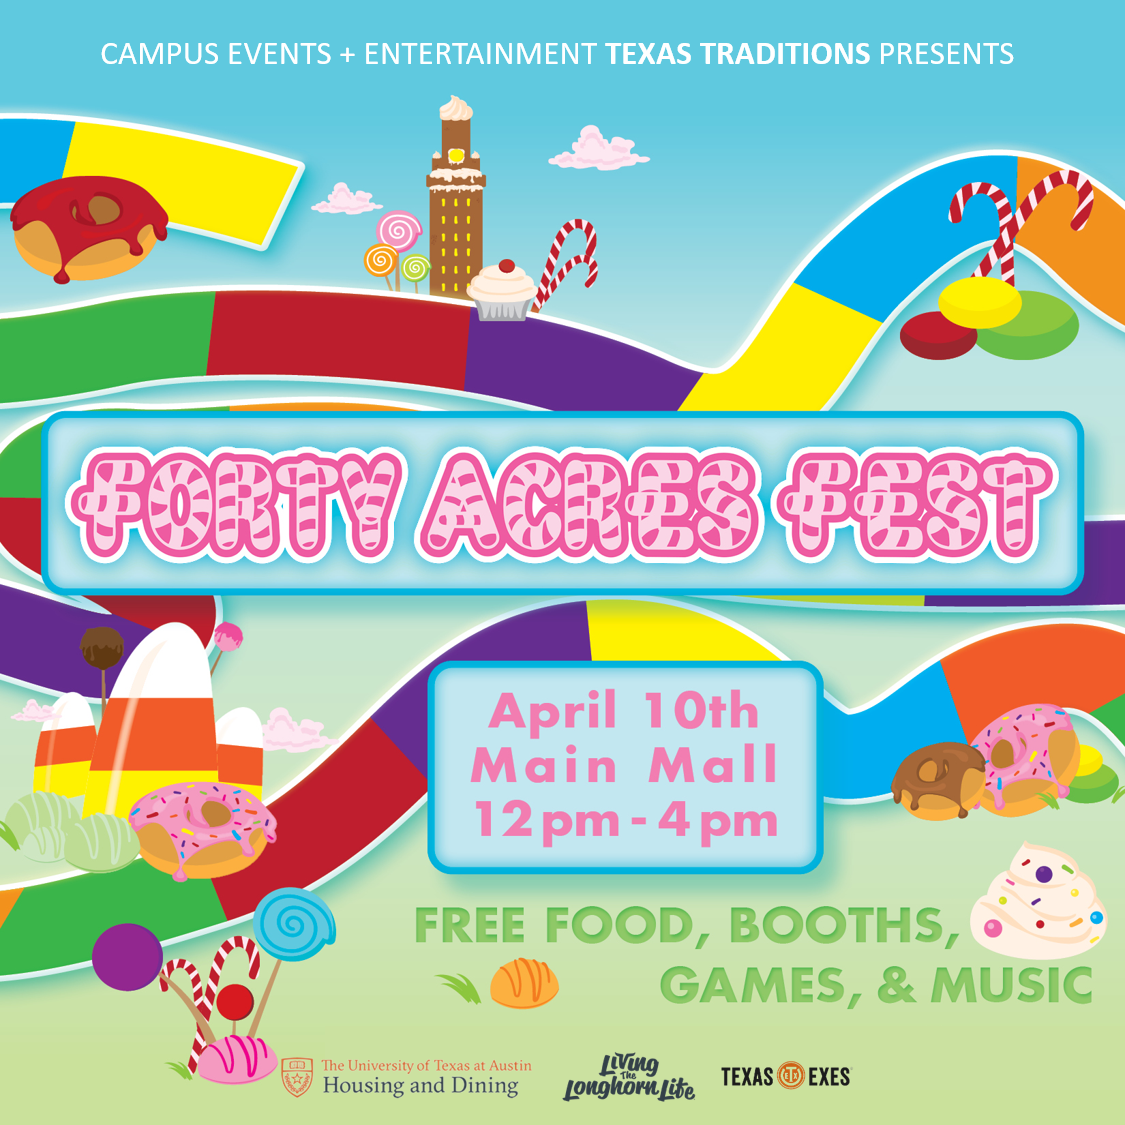 Candyland April 10th on the Main Mall from 12-4pm